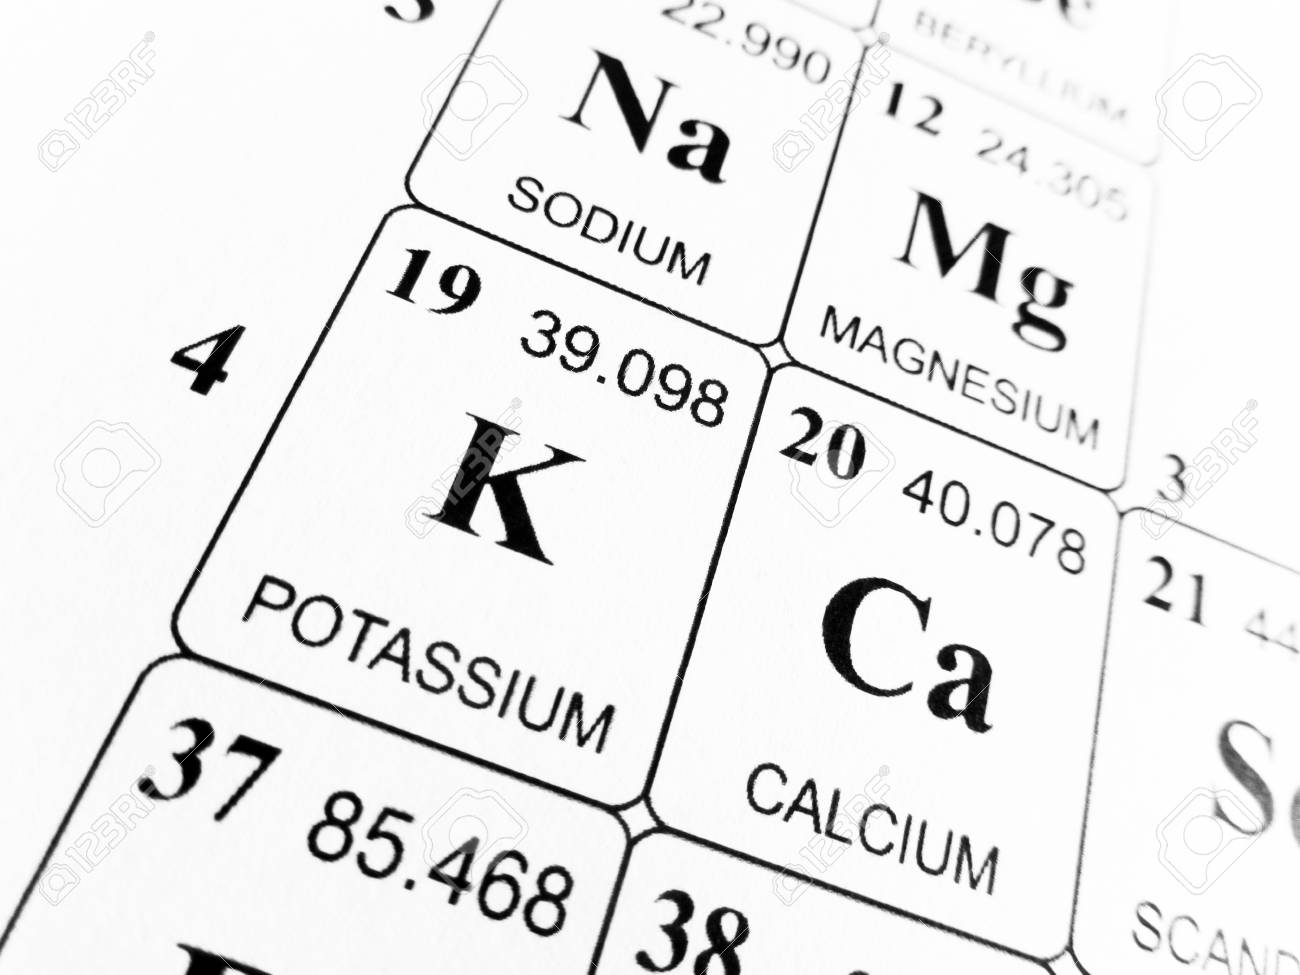 Potassium on the periodic table of the elements stock photo picture potassium on the periodic table of the elements stock photo 81556869 urtaz Images